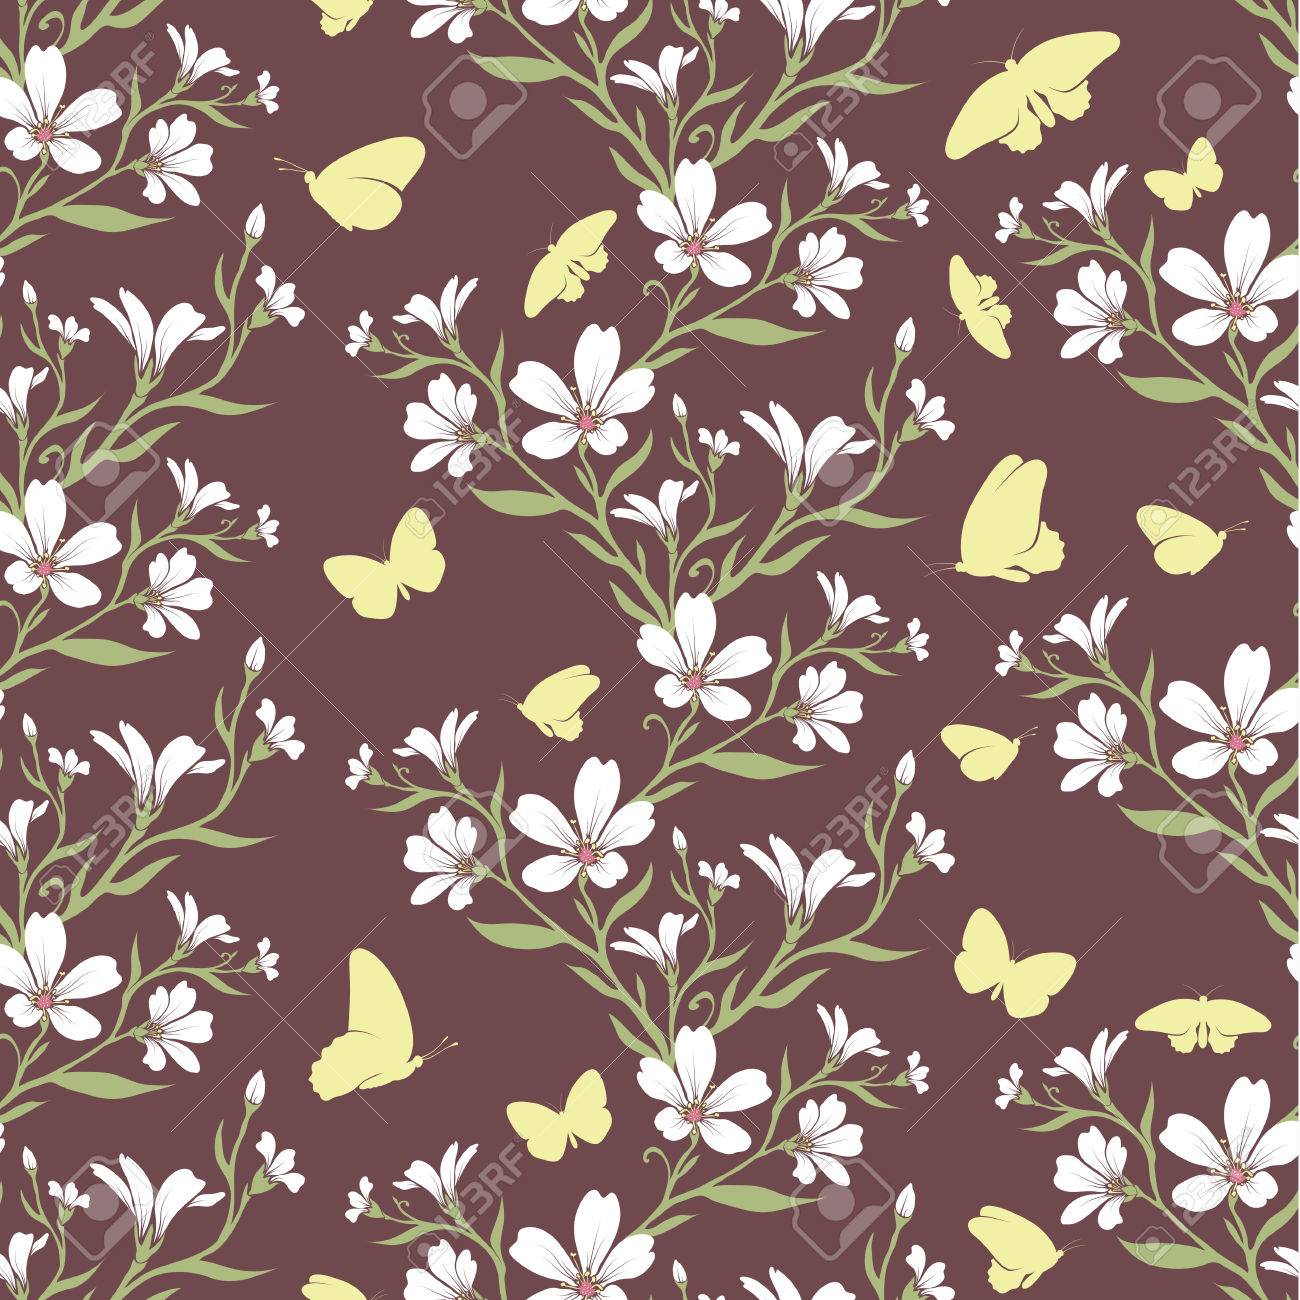 Vector Seamless Tiling Pattern Romantic Flowers For Printing On